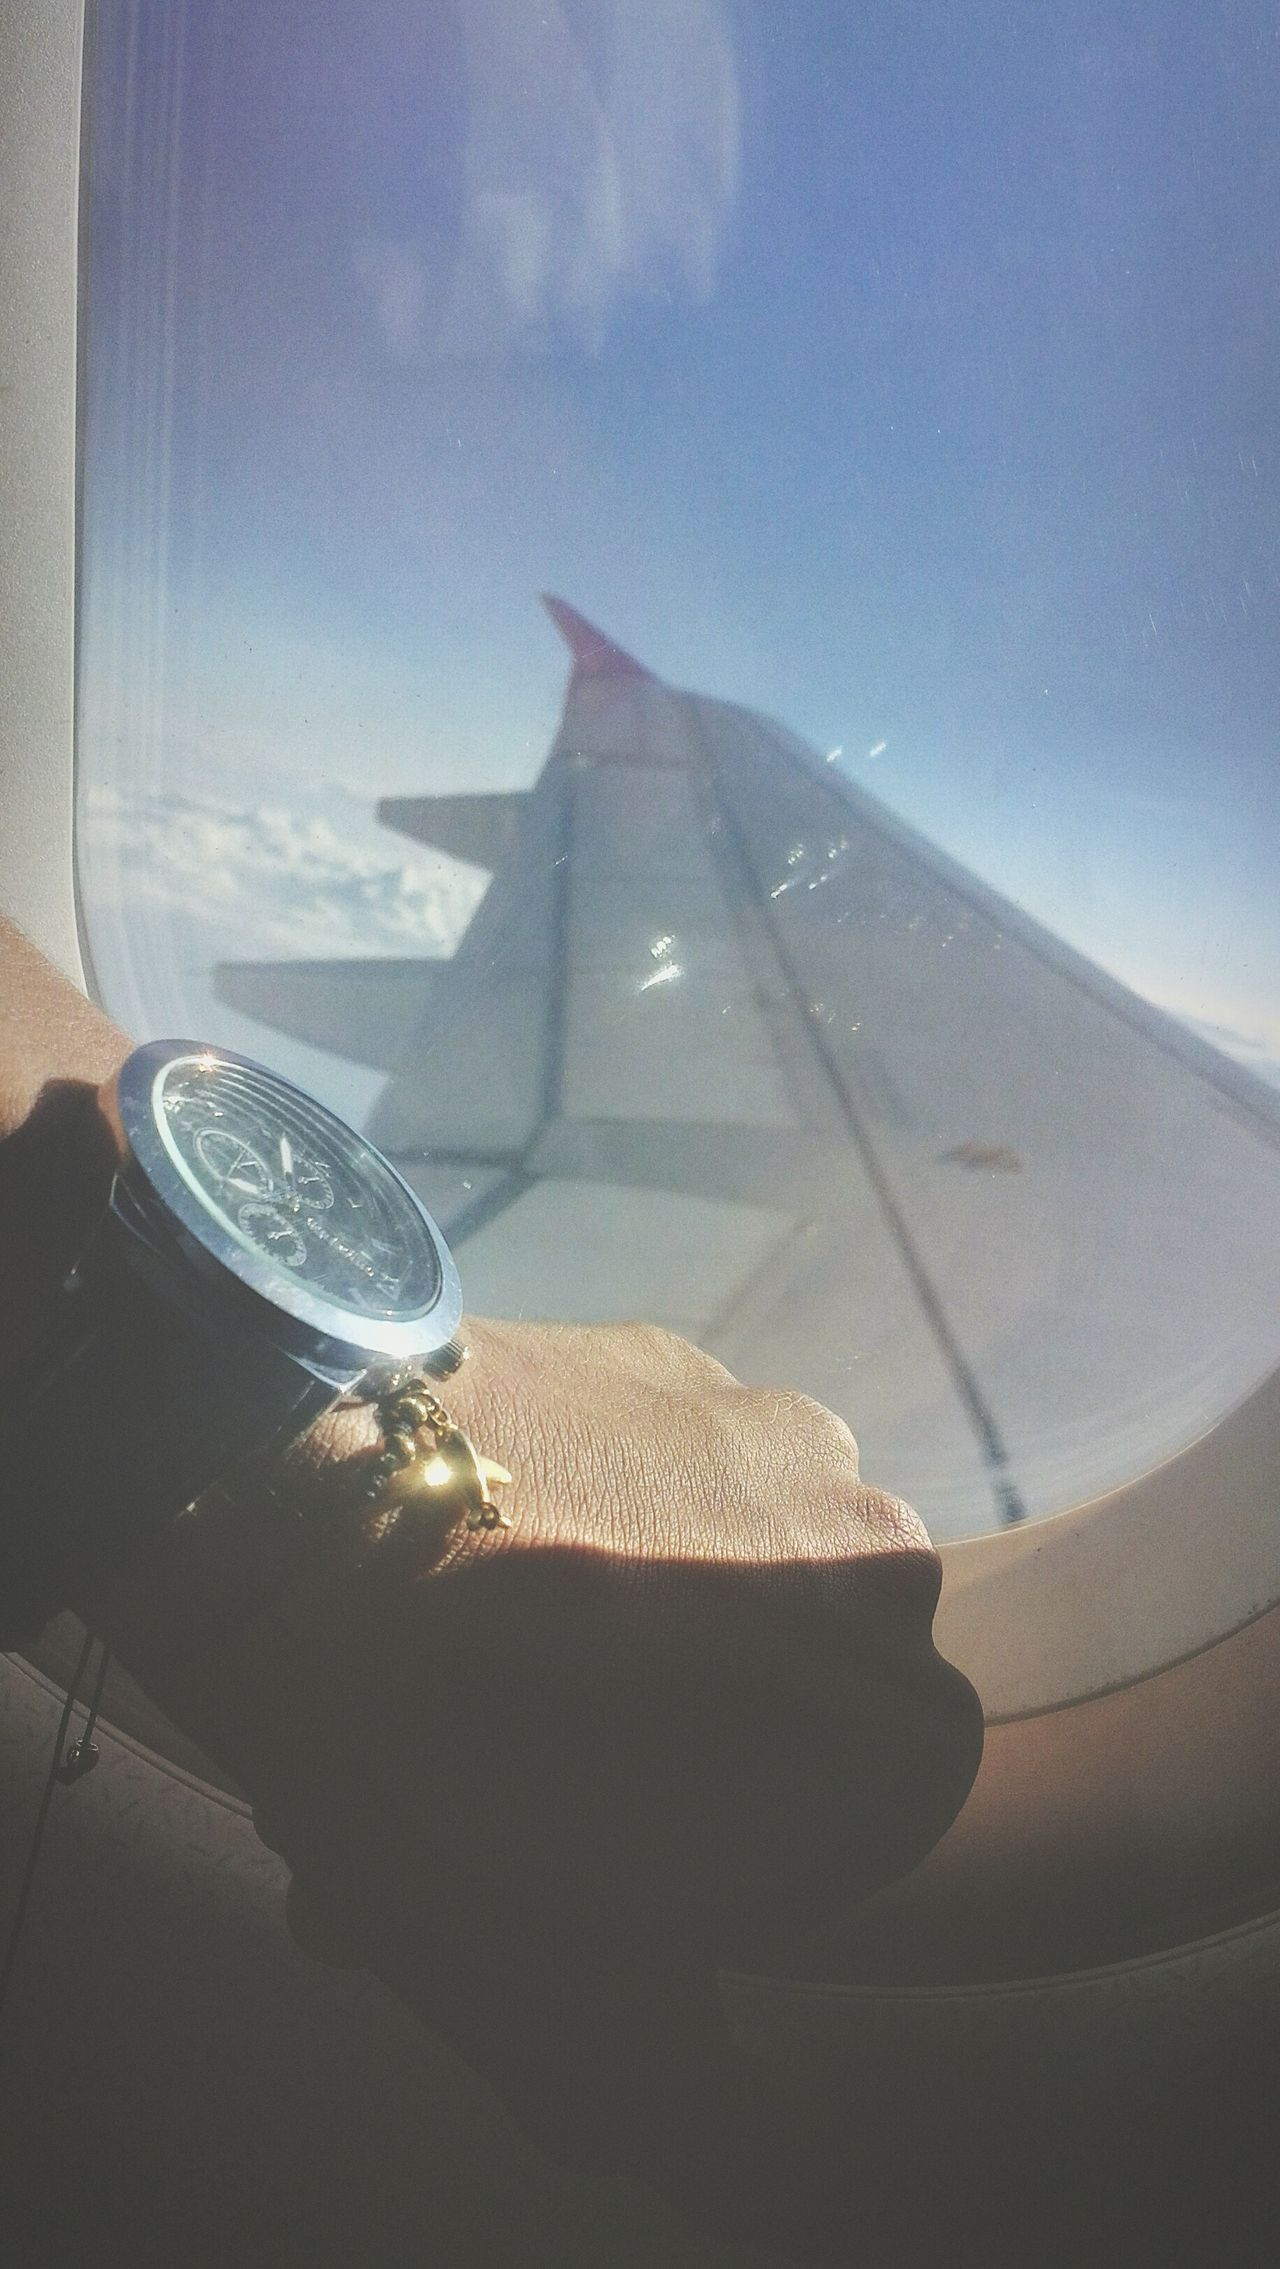 Fly Aviationphotography Aviation Acsessories Reloj Ventana Con Vistas Beautiful Day